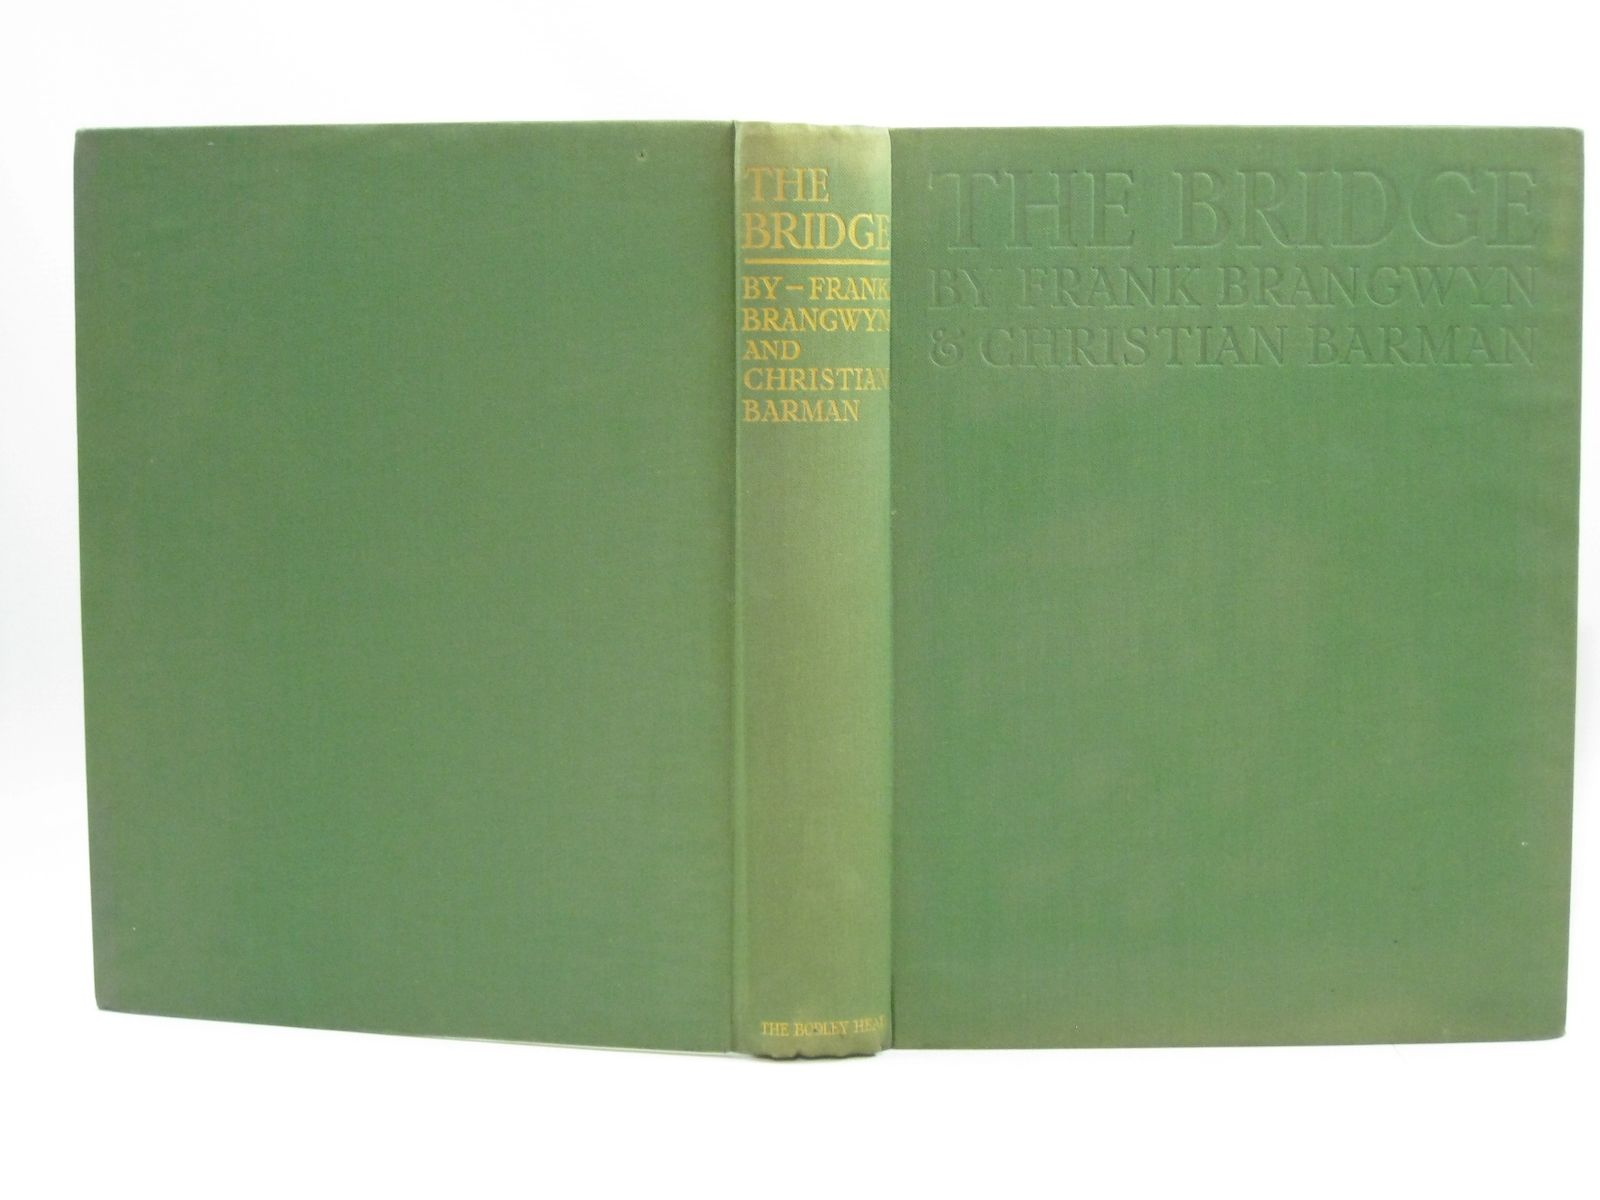 Photo of THE BRIDGE written by Barman, Christian illustrated by Brangwyn, Frank published by John Lane The Bodley Head Limited (STOCK CODE: 1504503)  for sale by Stella & Rose's Books